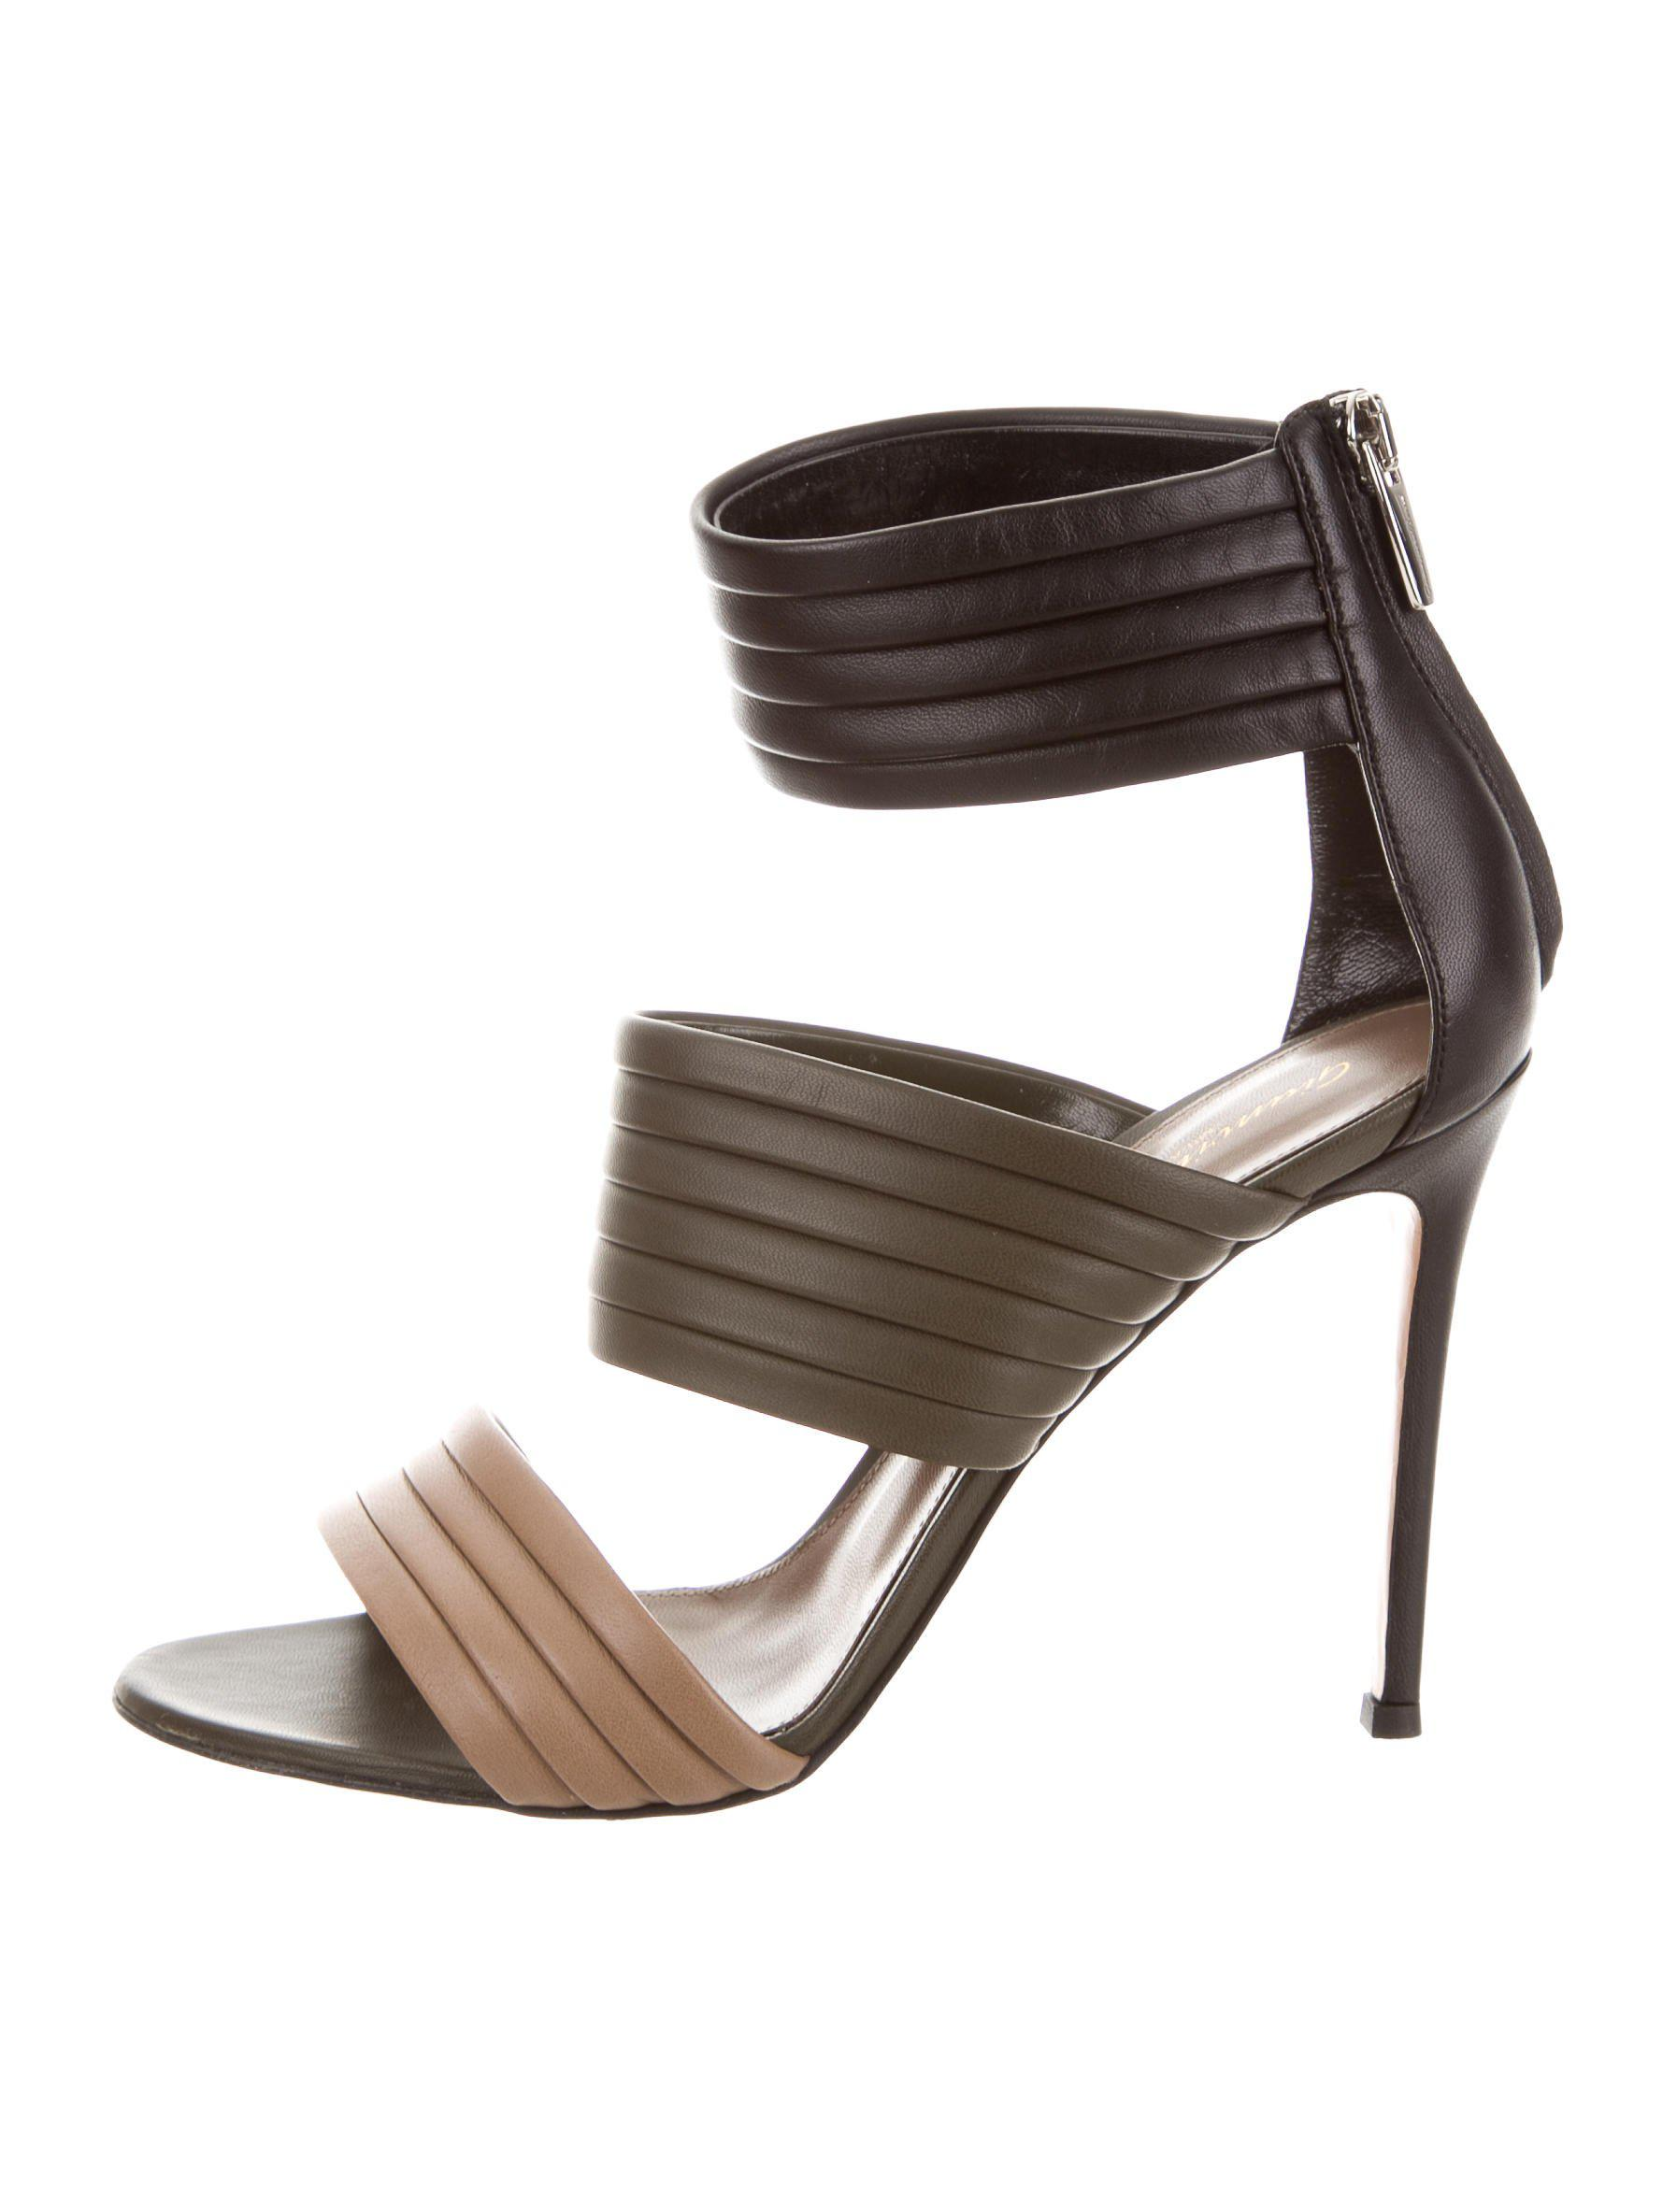 Gianvito Rossi Cutout Zip Sandals w/ Tags browse for sale free shipping outlet locations PNjipel1